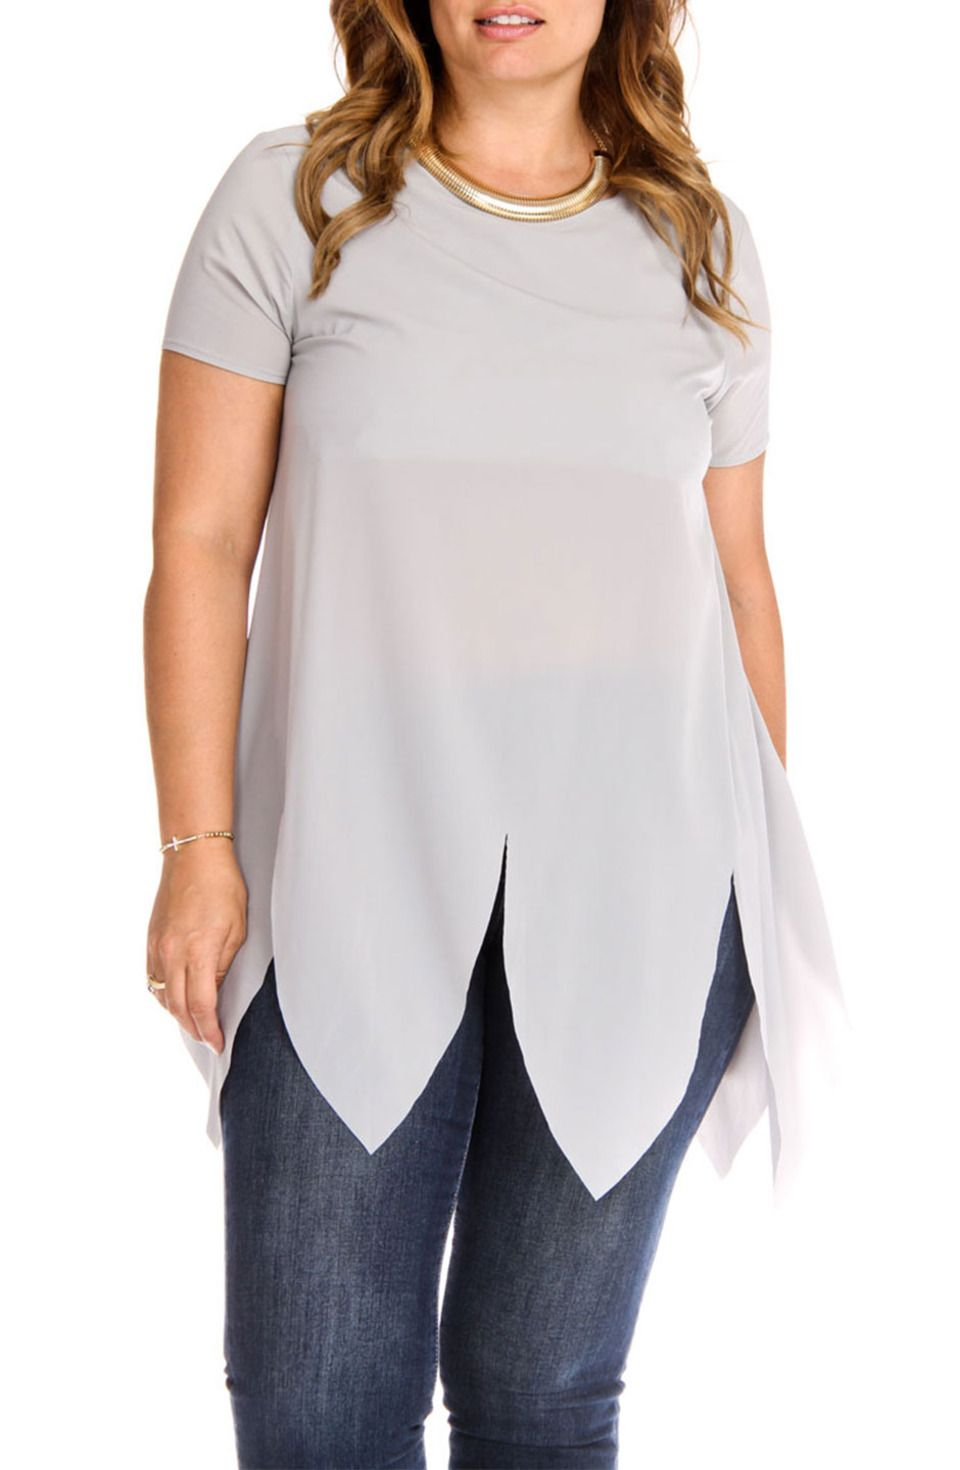 BellaBerry USA - Asymmetric Semi-Sheer Tunic in Gray